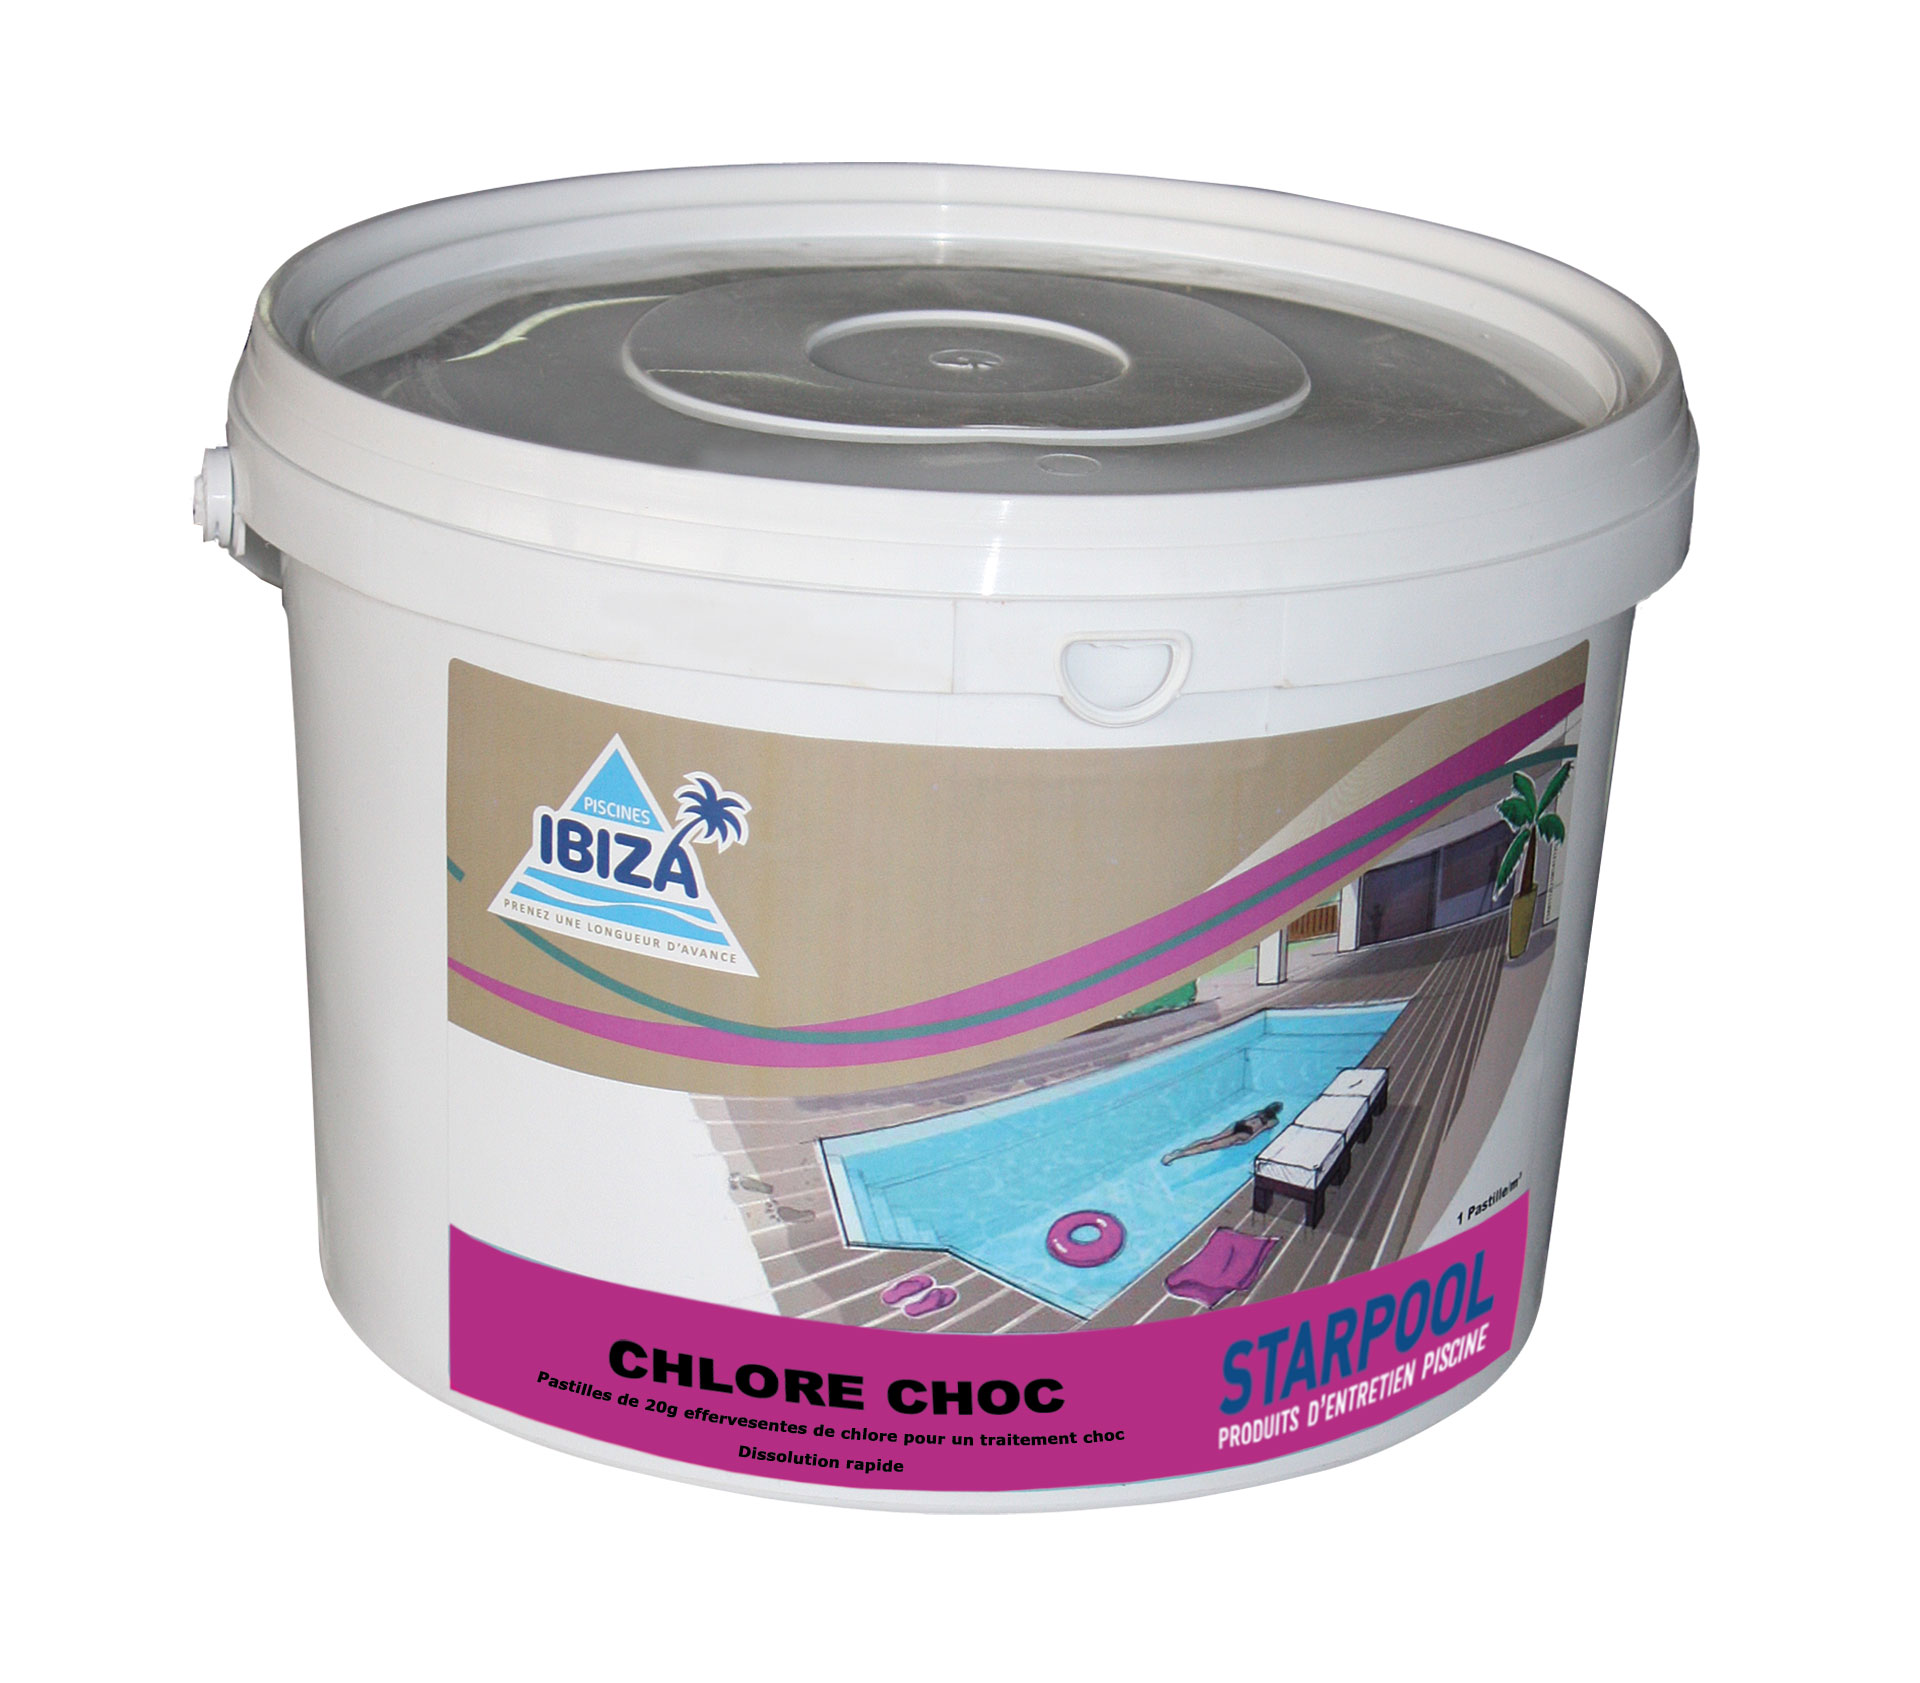 Chlore choc pour piscine chlorinate shock gr produces for for Piscine verte malgre chlore choc